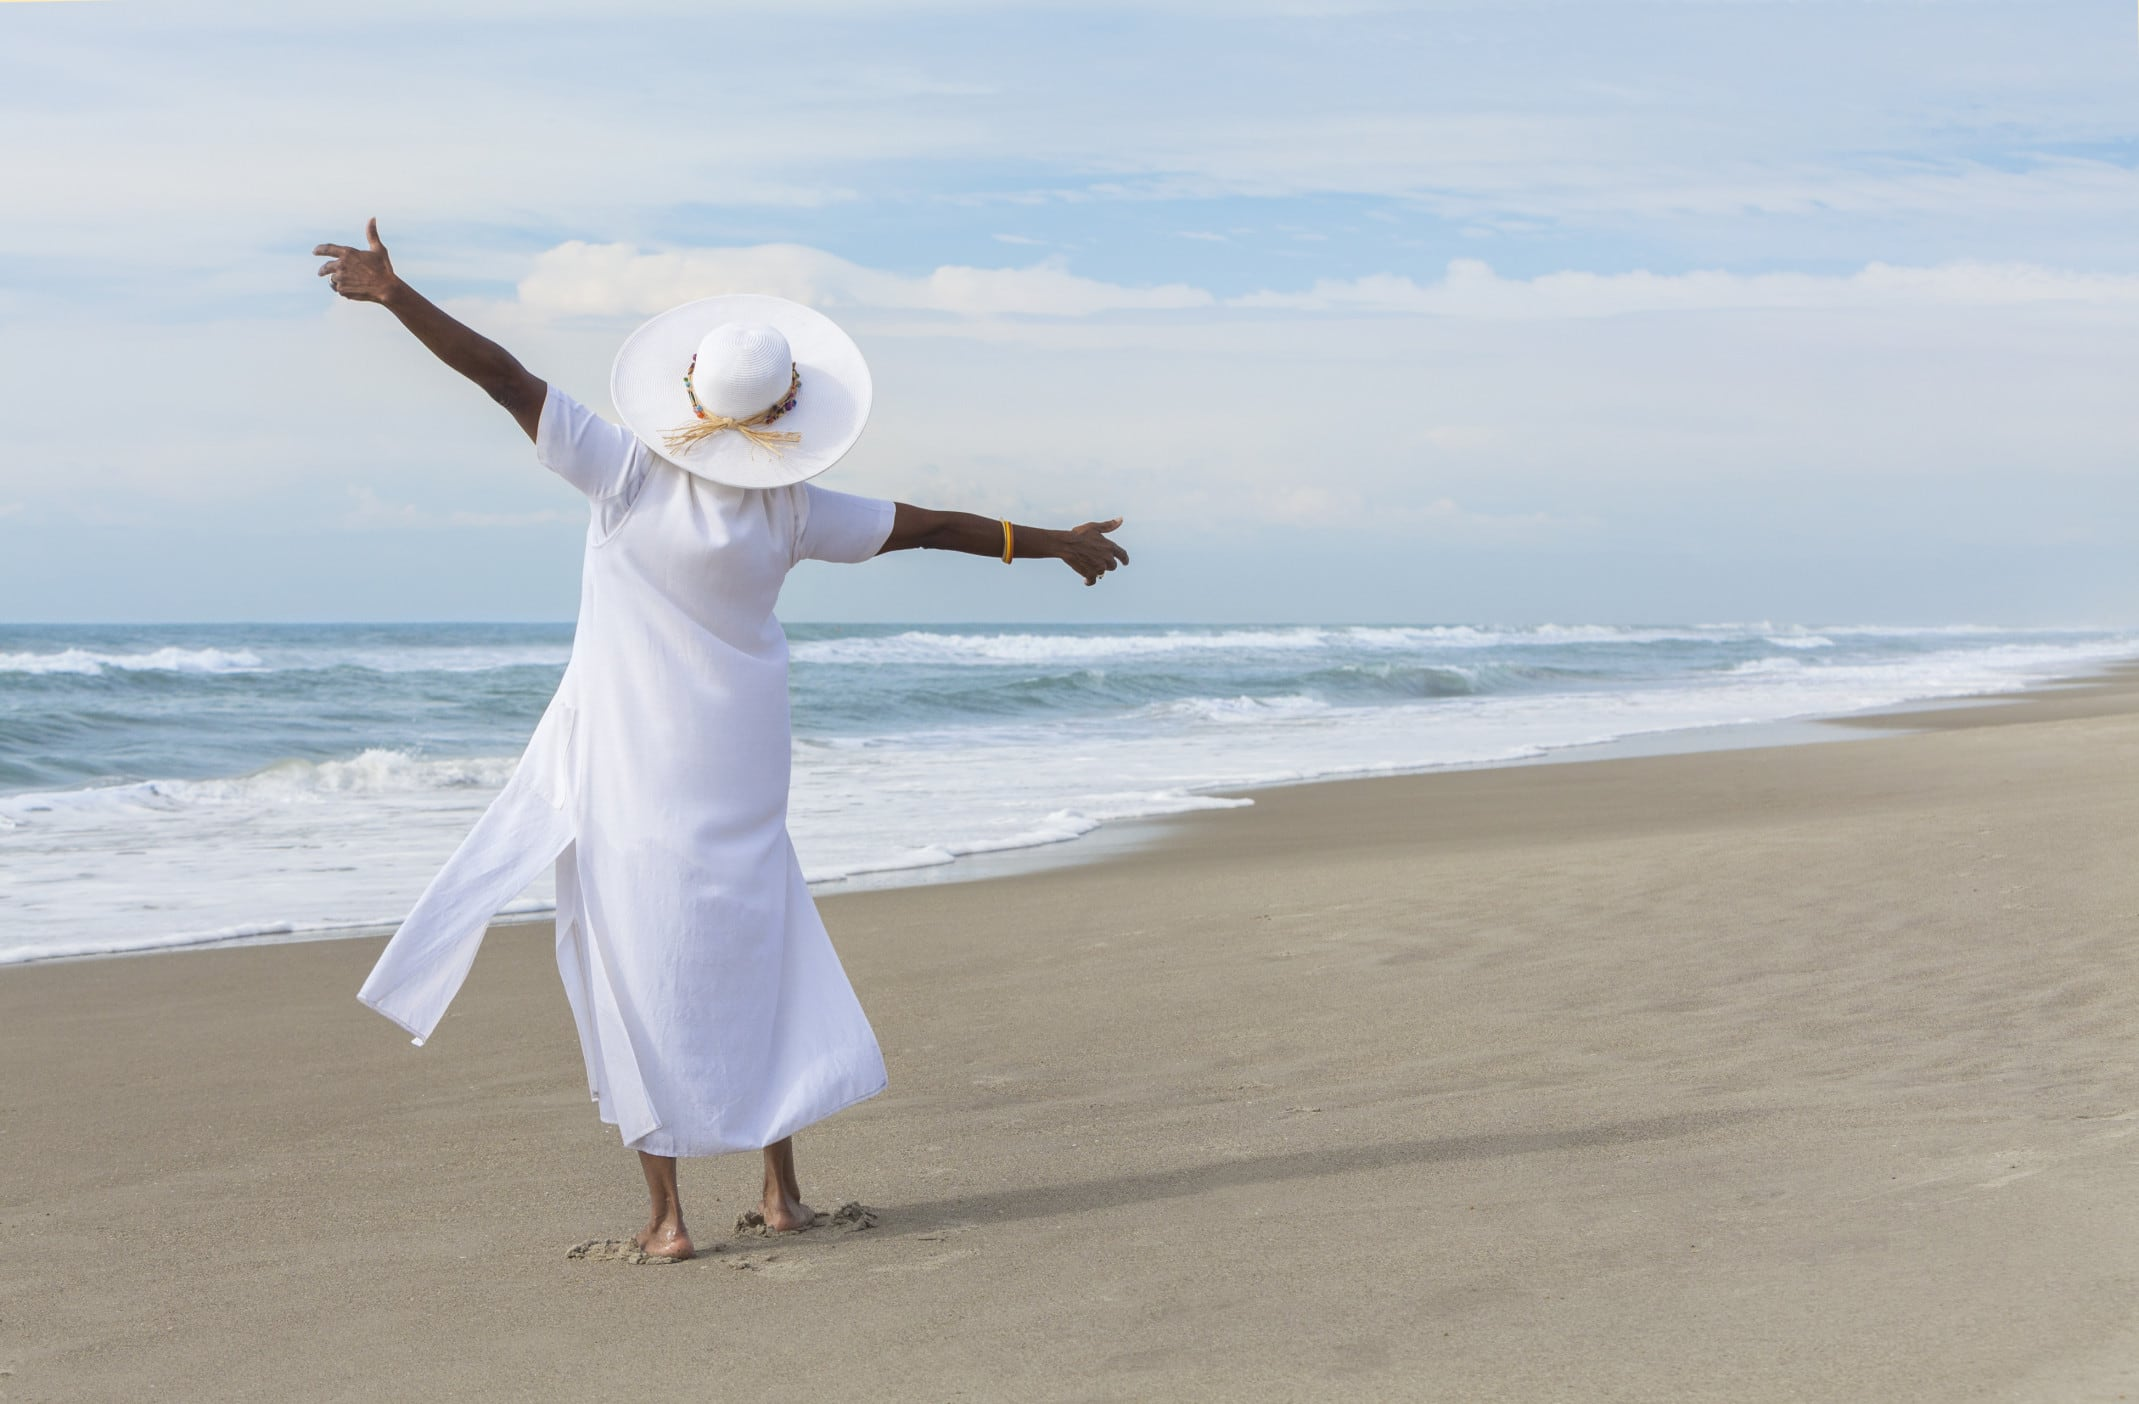 Fighting Fibroids and Winning: Raise Your Voice